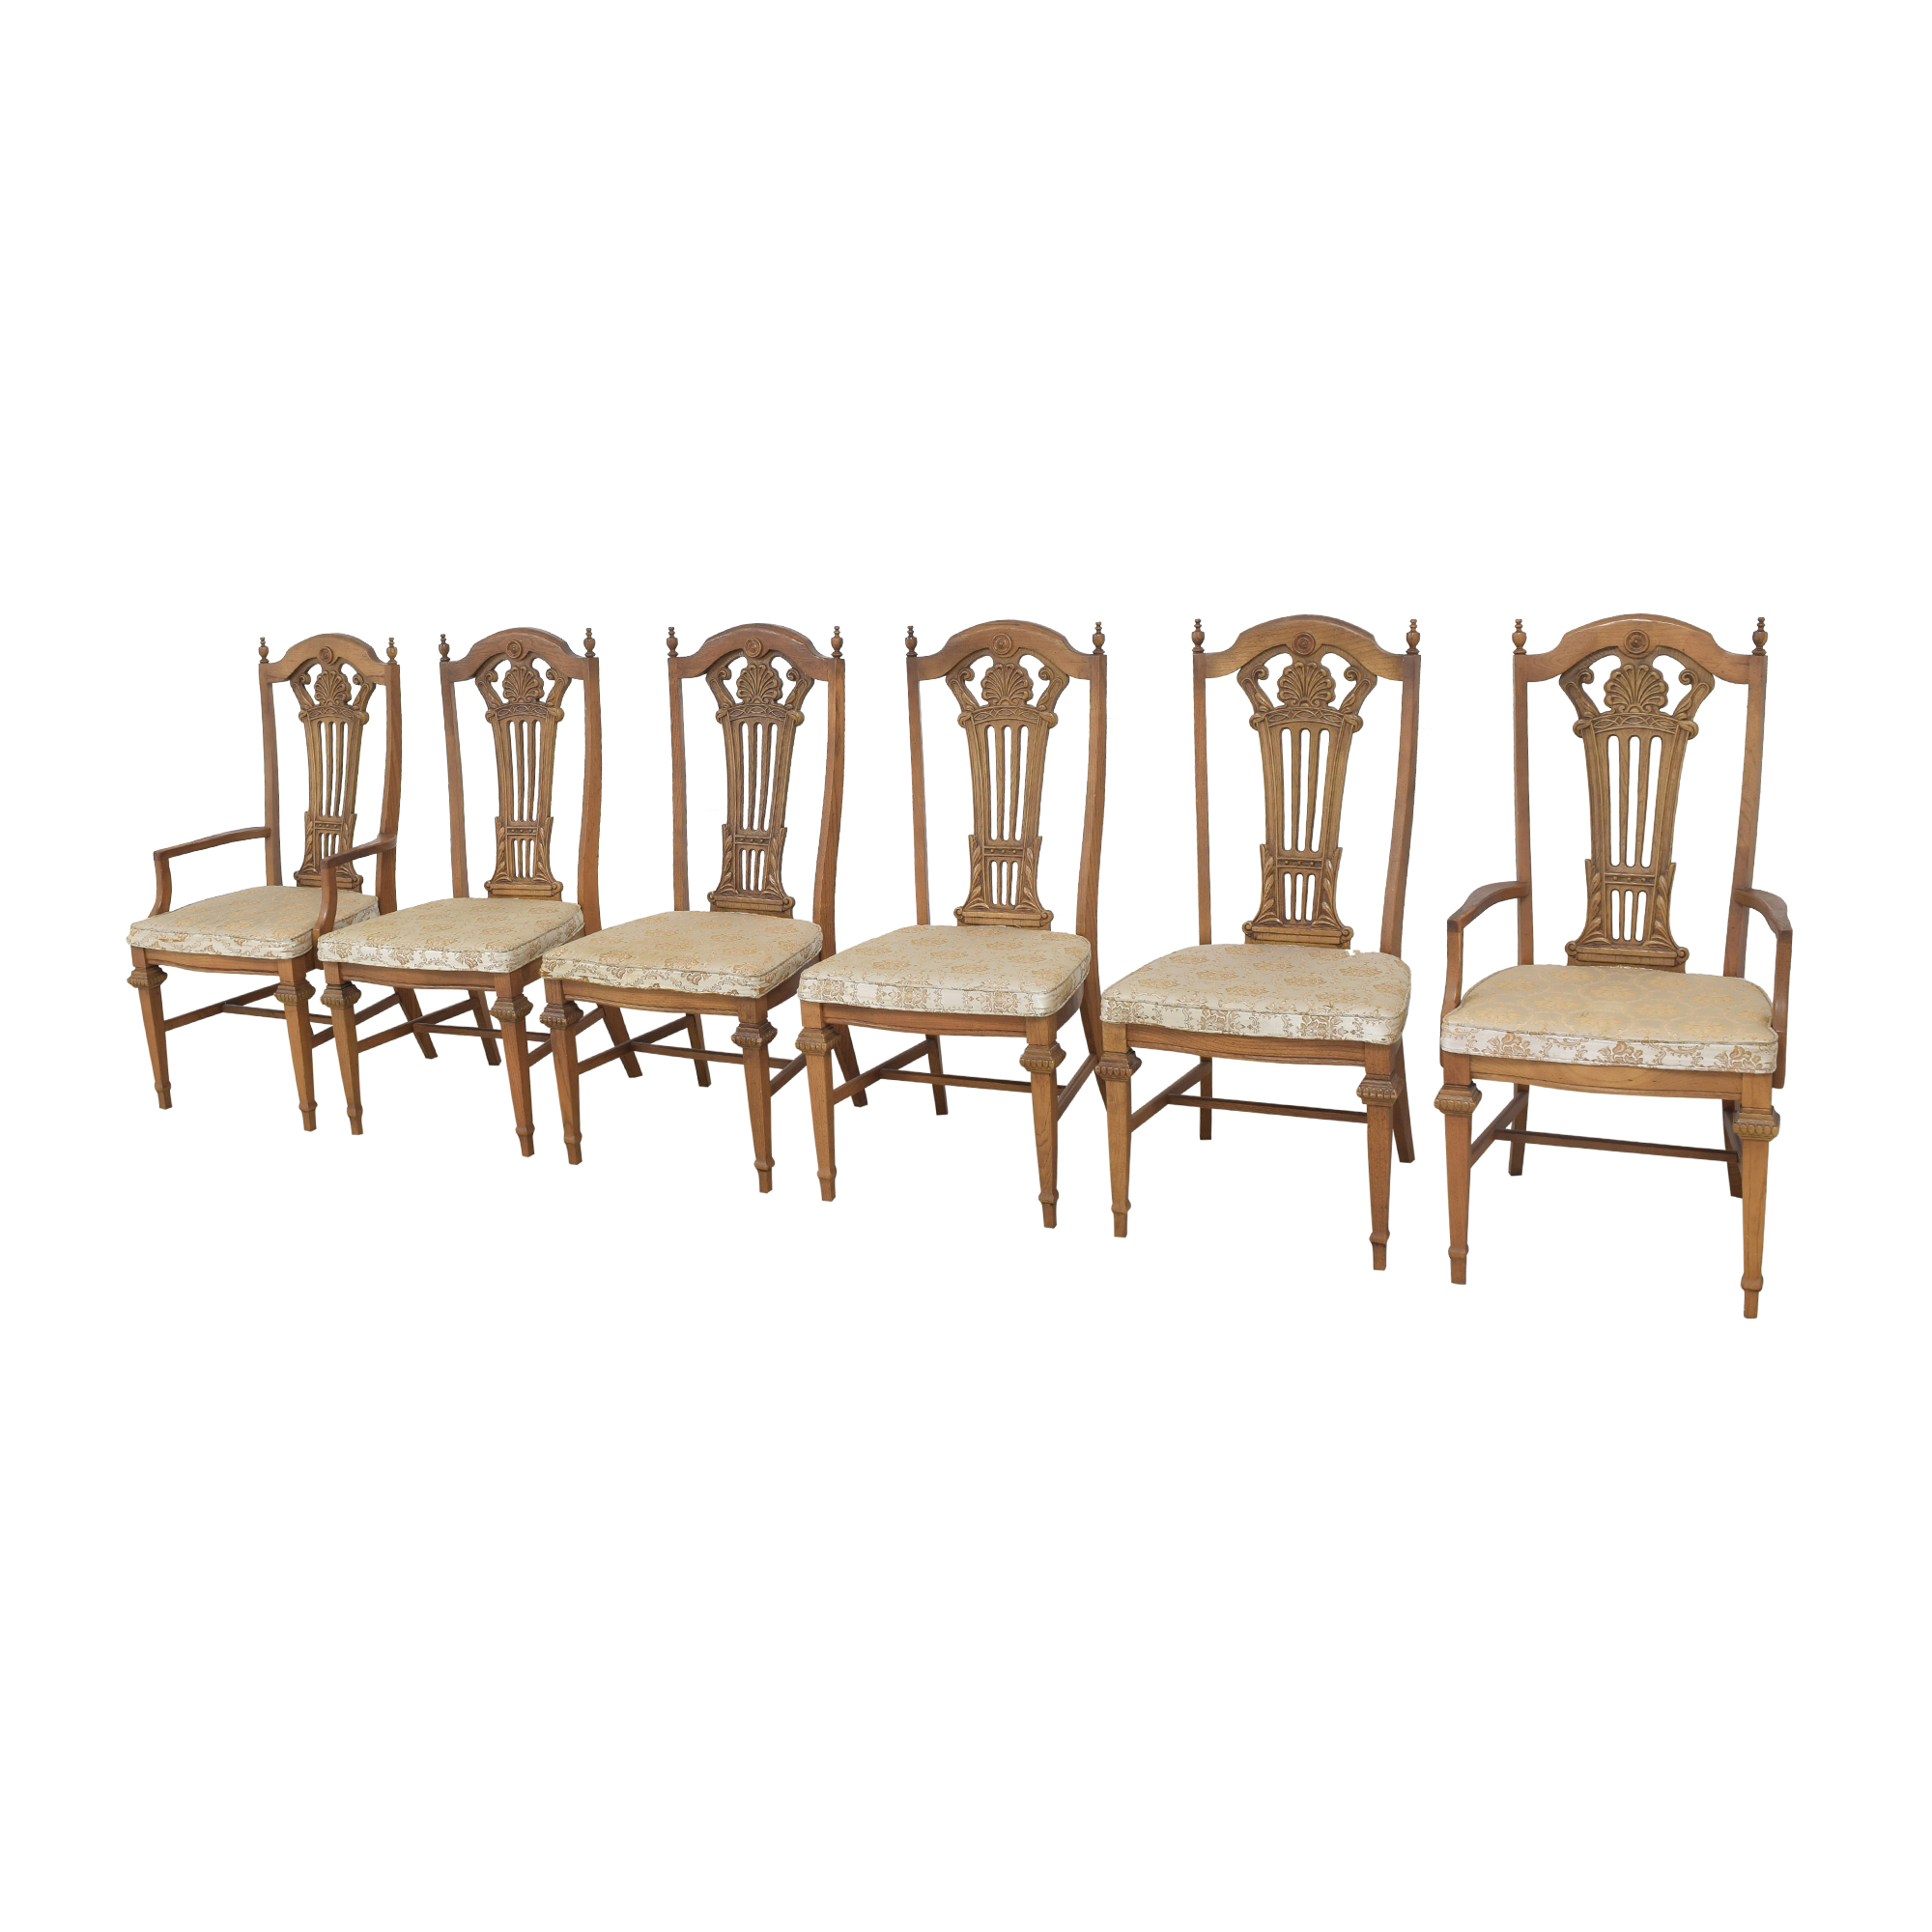 Bassett Furniture Bassett Chair Carved Dining Chairs ma